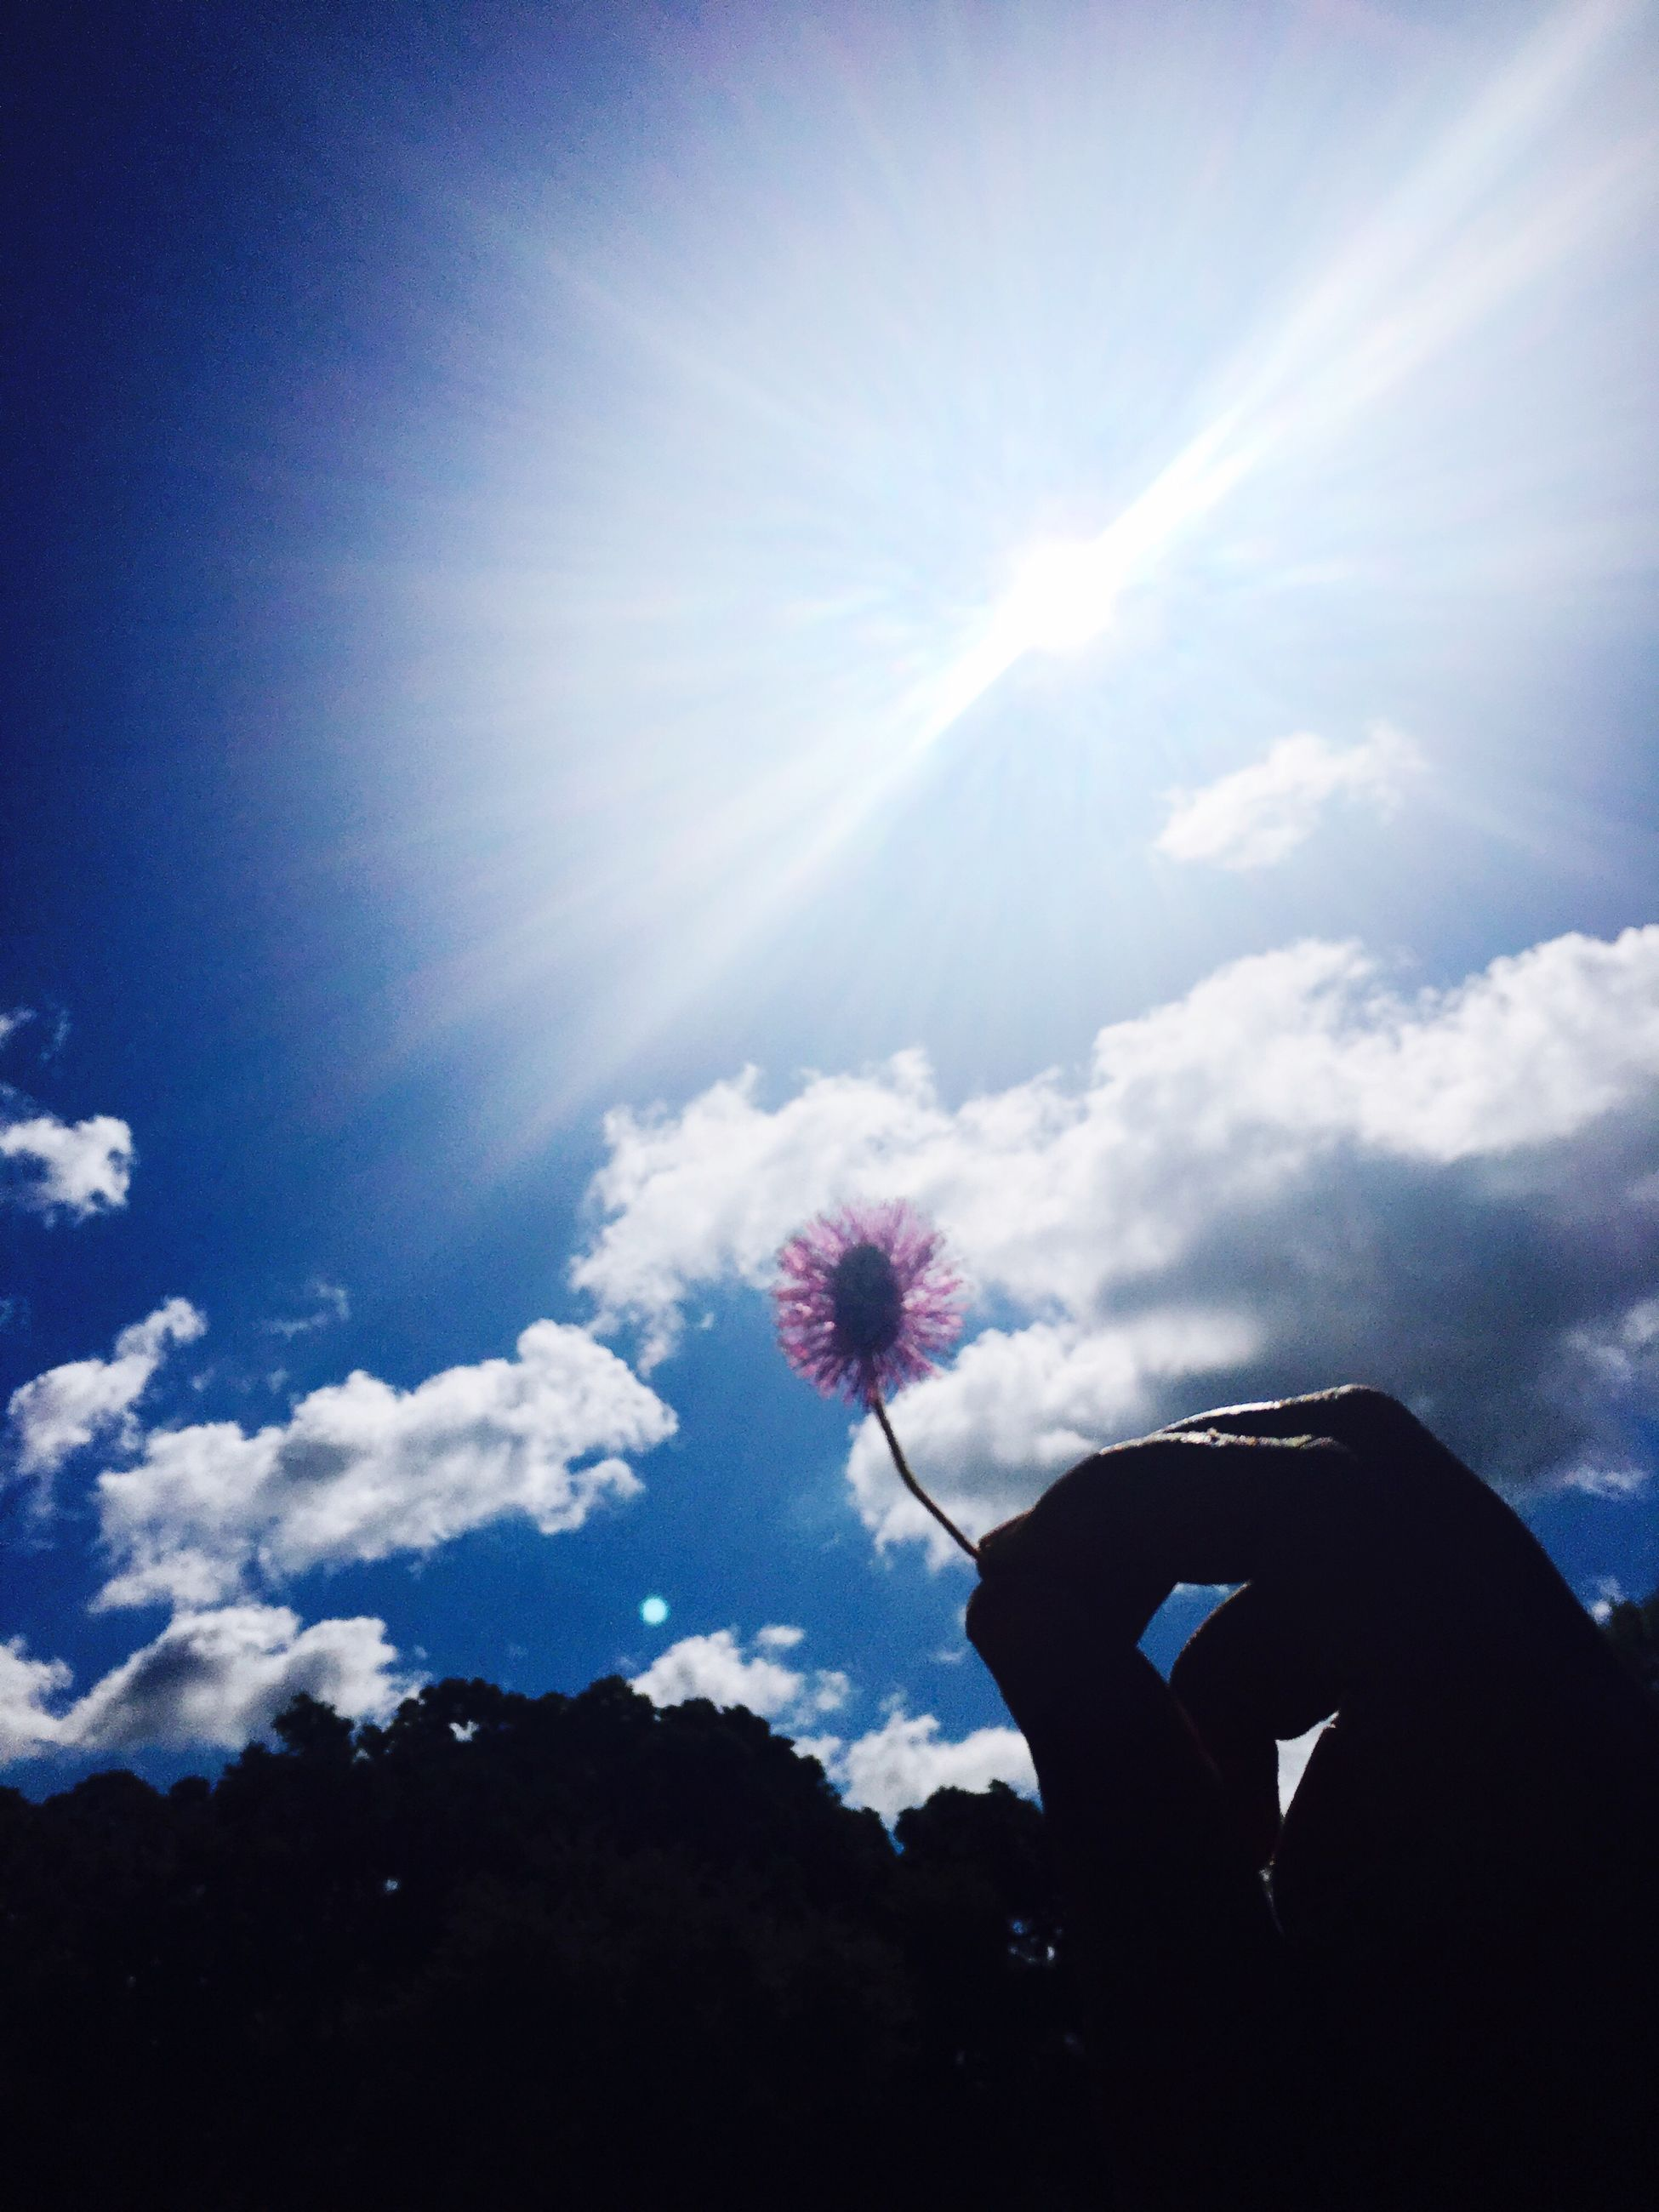 silhouette, sky, sunlight, sunbeam, leisure activity, beauty in nature, sun, nature, cloud - sky, low angle view, lifestyles, blue, unrecognizable person, flower, cloud, men, scenics, tranquility